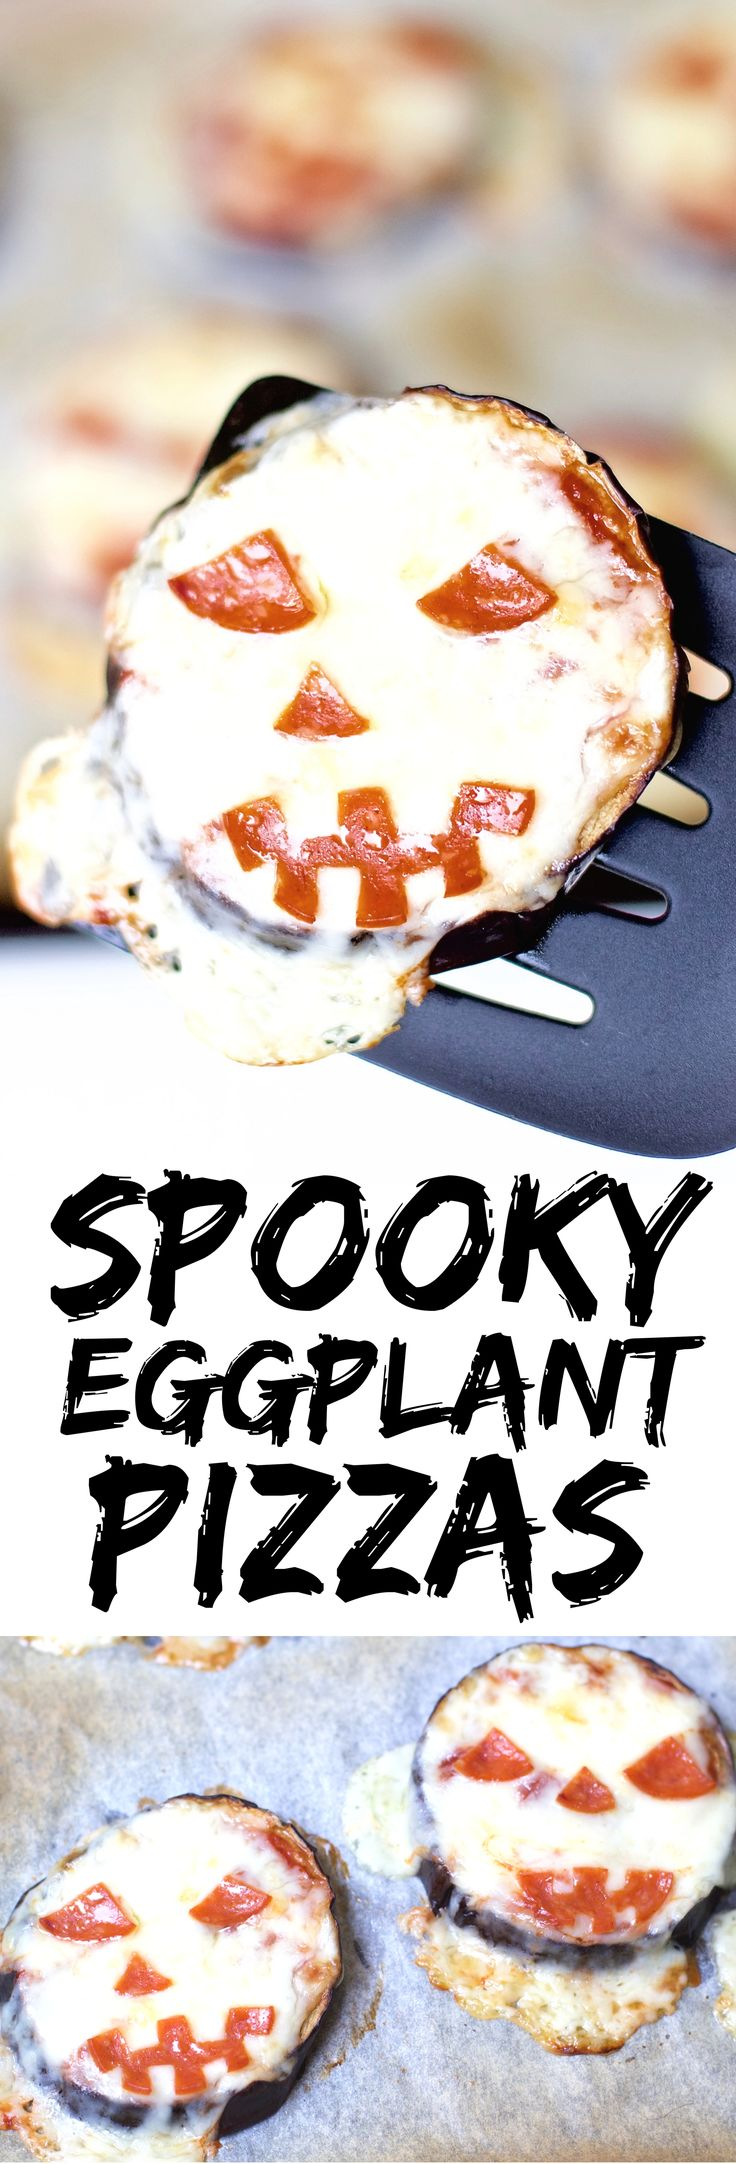 Satisfy all of the ghouls in your life this Halloween when you make these spooky Eggplant Jack-O-Lantern Mini Pizzas for your fright fest. Simple to assemble, and ready in less than 30 minutes, these are perfect for getting the little ones involved.